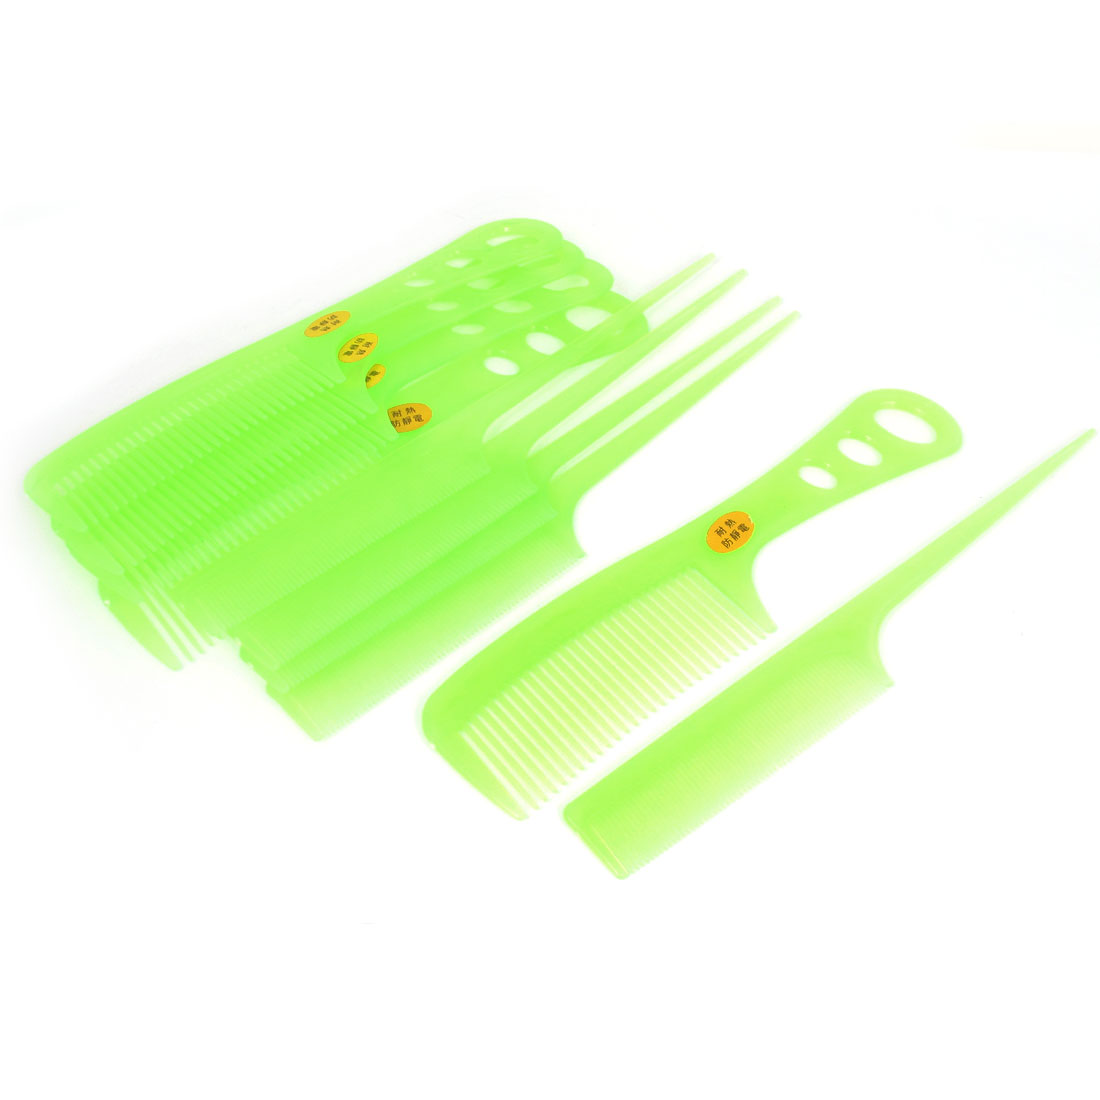 Home Salon Anti-static Tooth Combs Hair Styling Tool Light Green 10 in 1